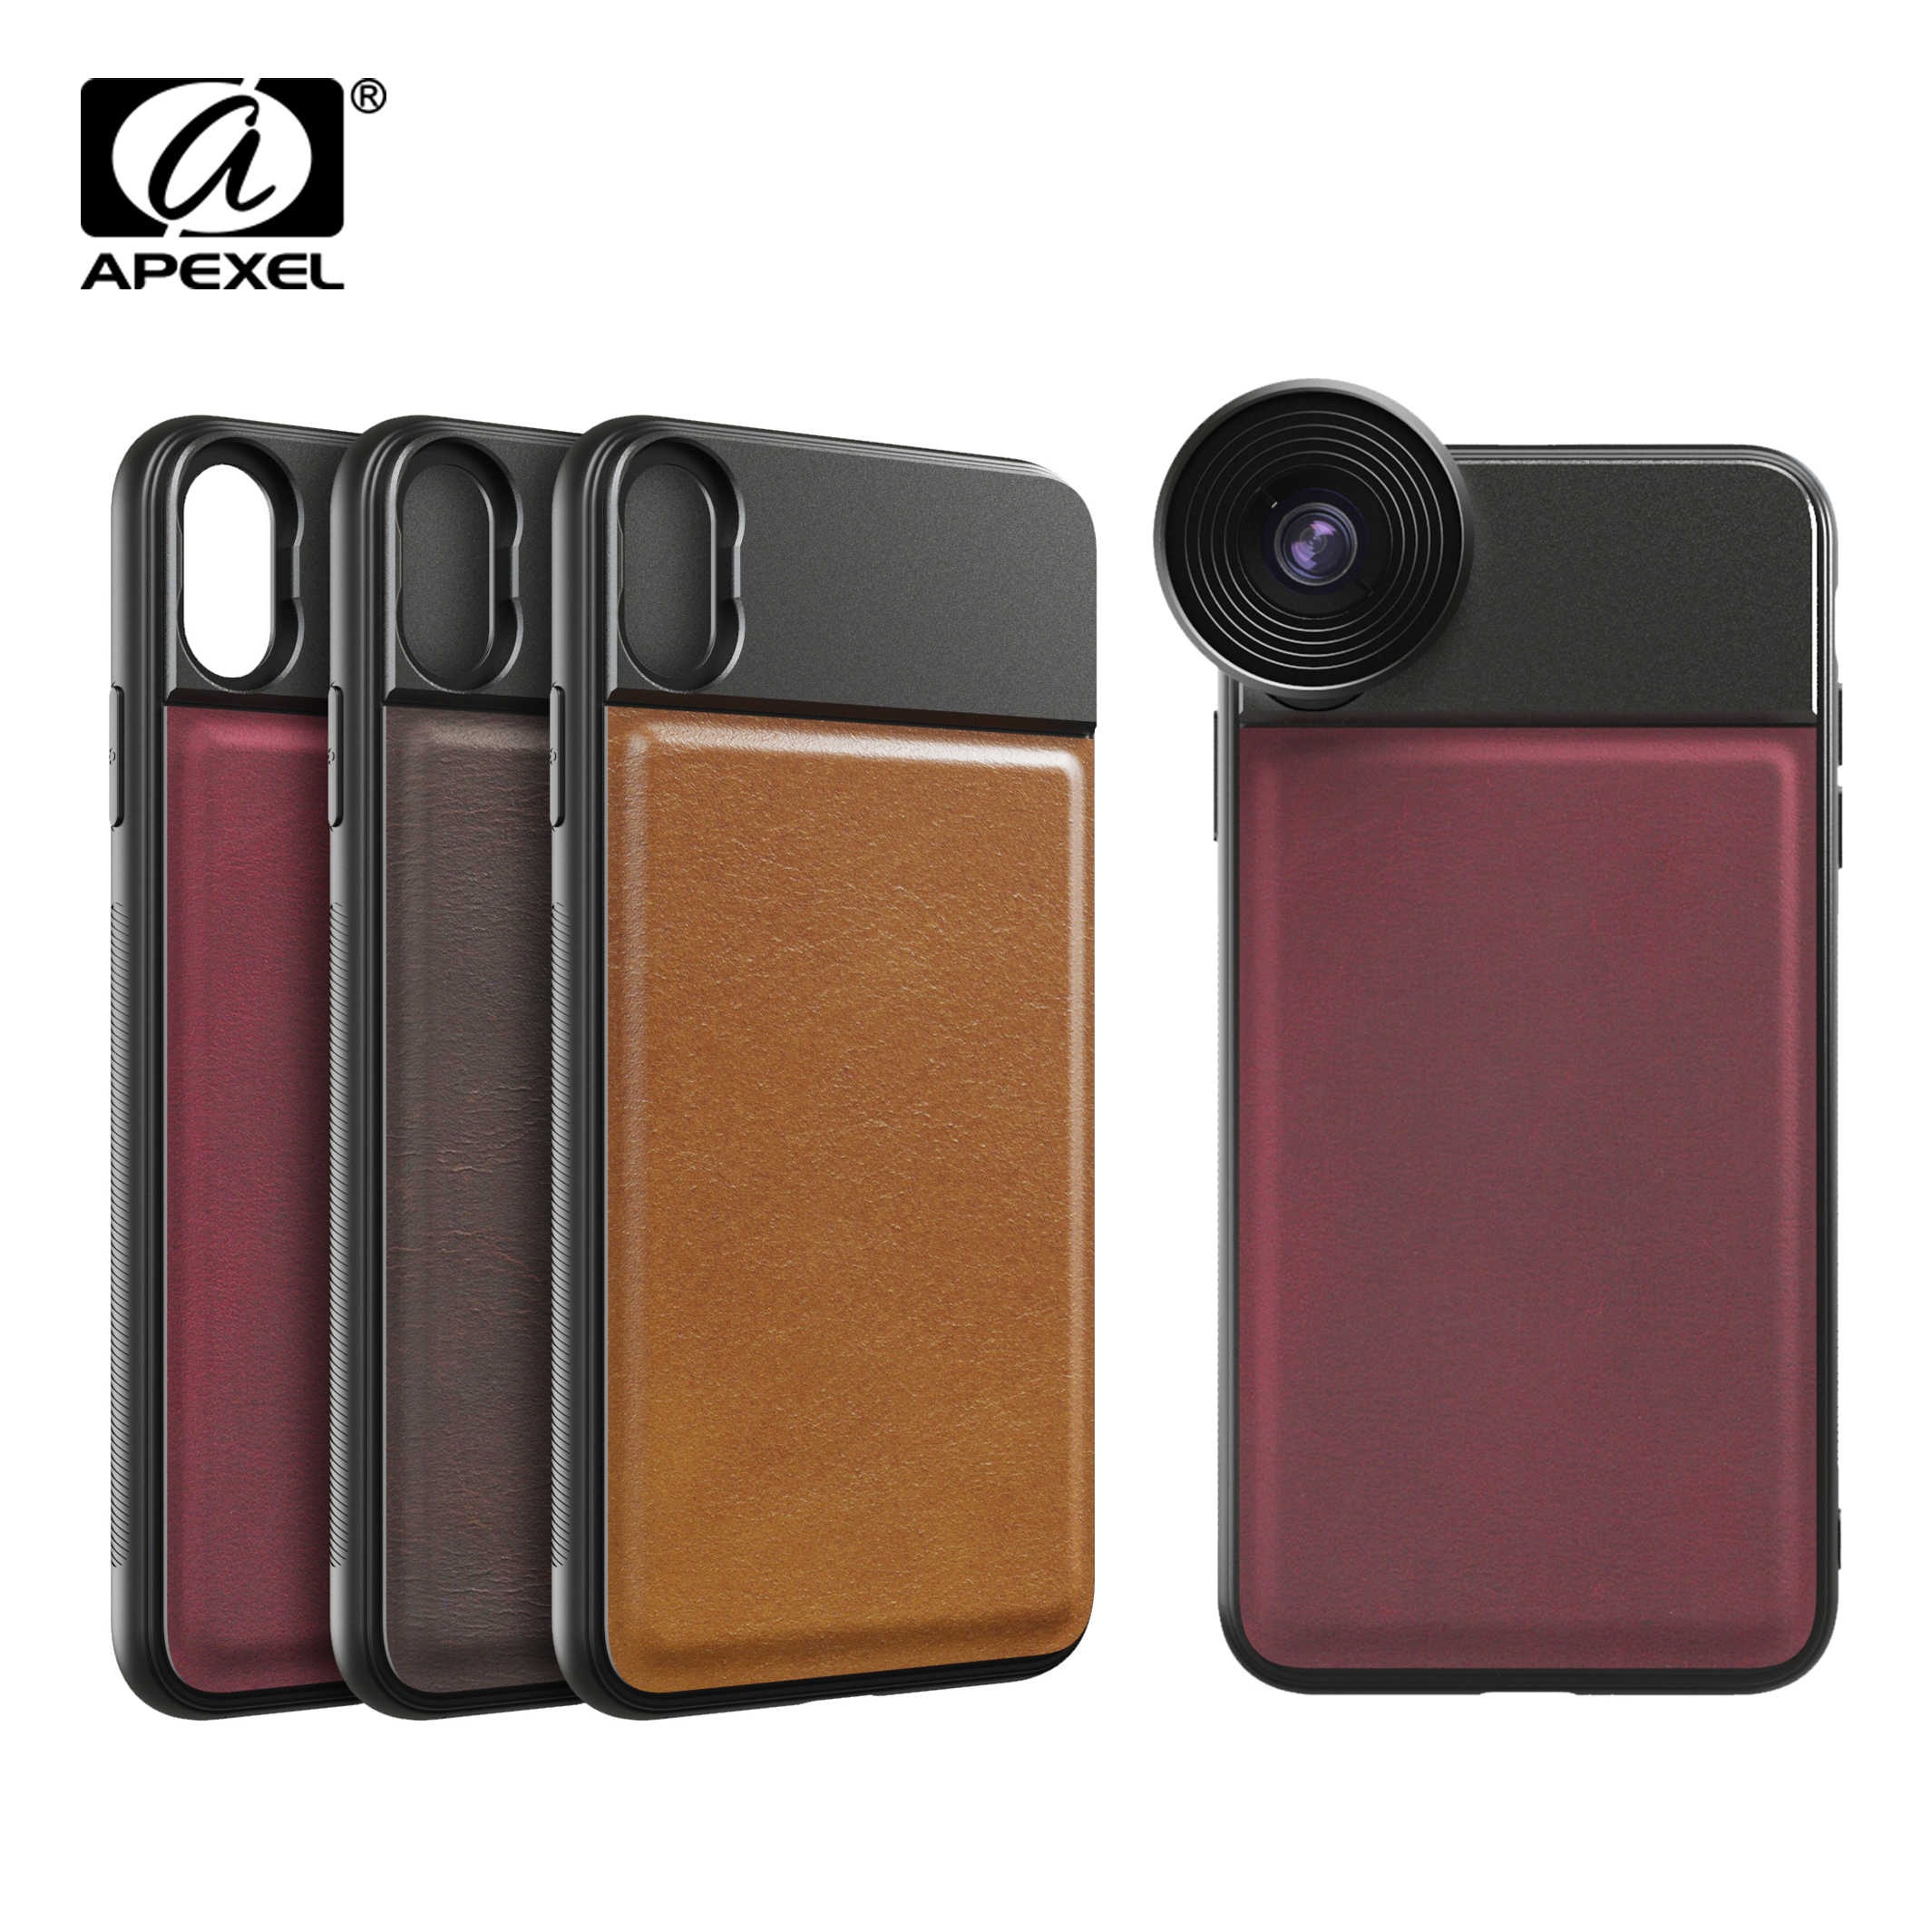 APEXEL High Quality Phone case cover leather phone caseswith 17mm thread for iPhone X XS max Huawei p20 p30 pro for phone lenses